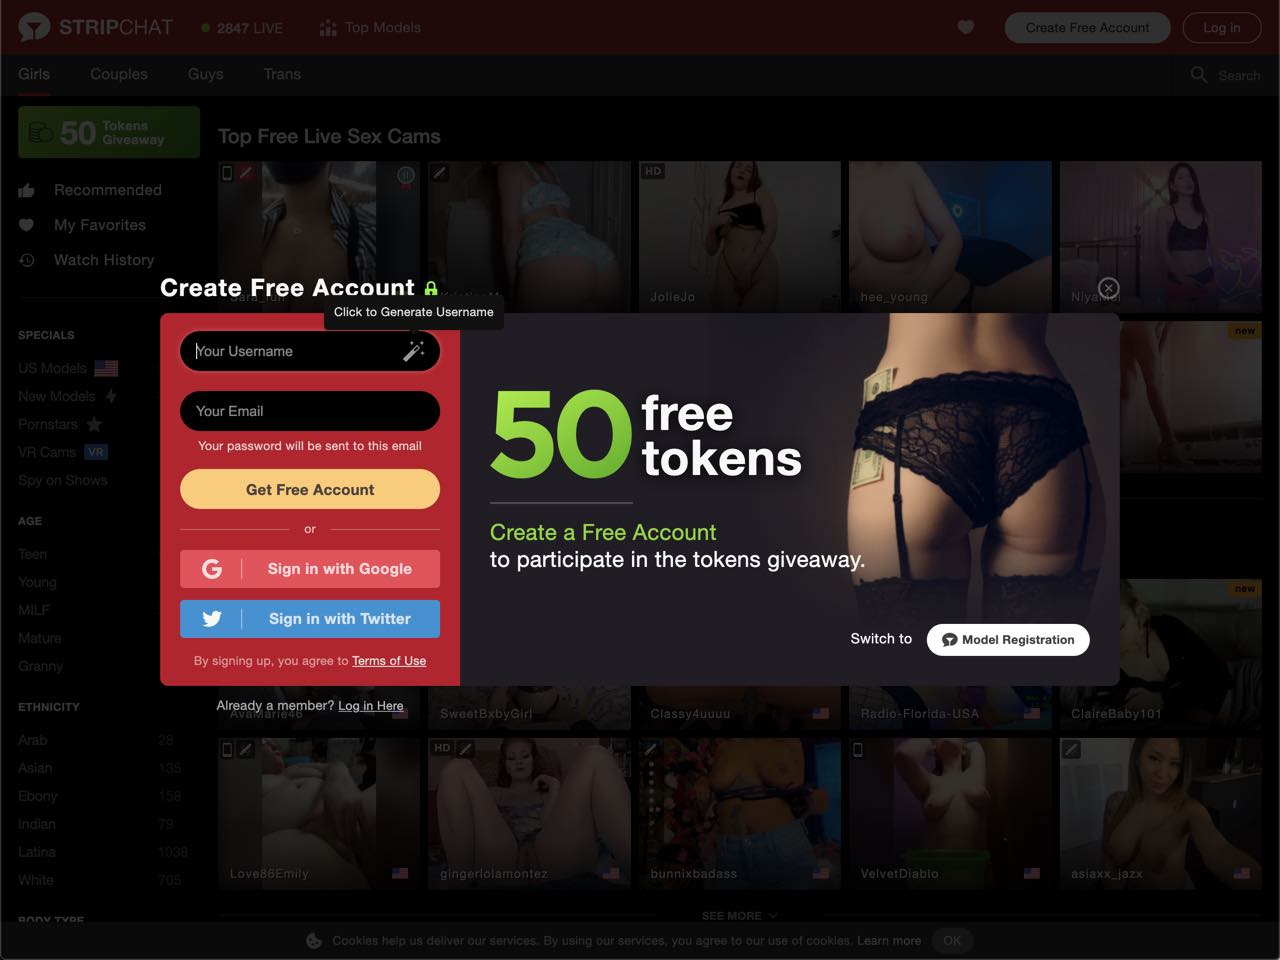 50 free tokens